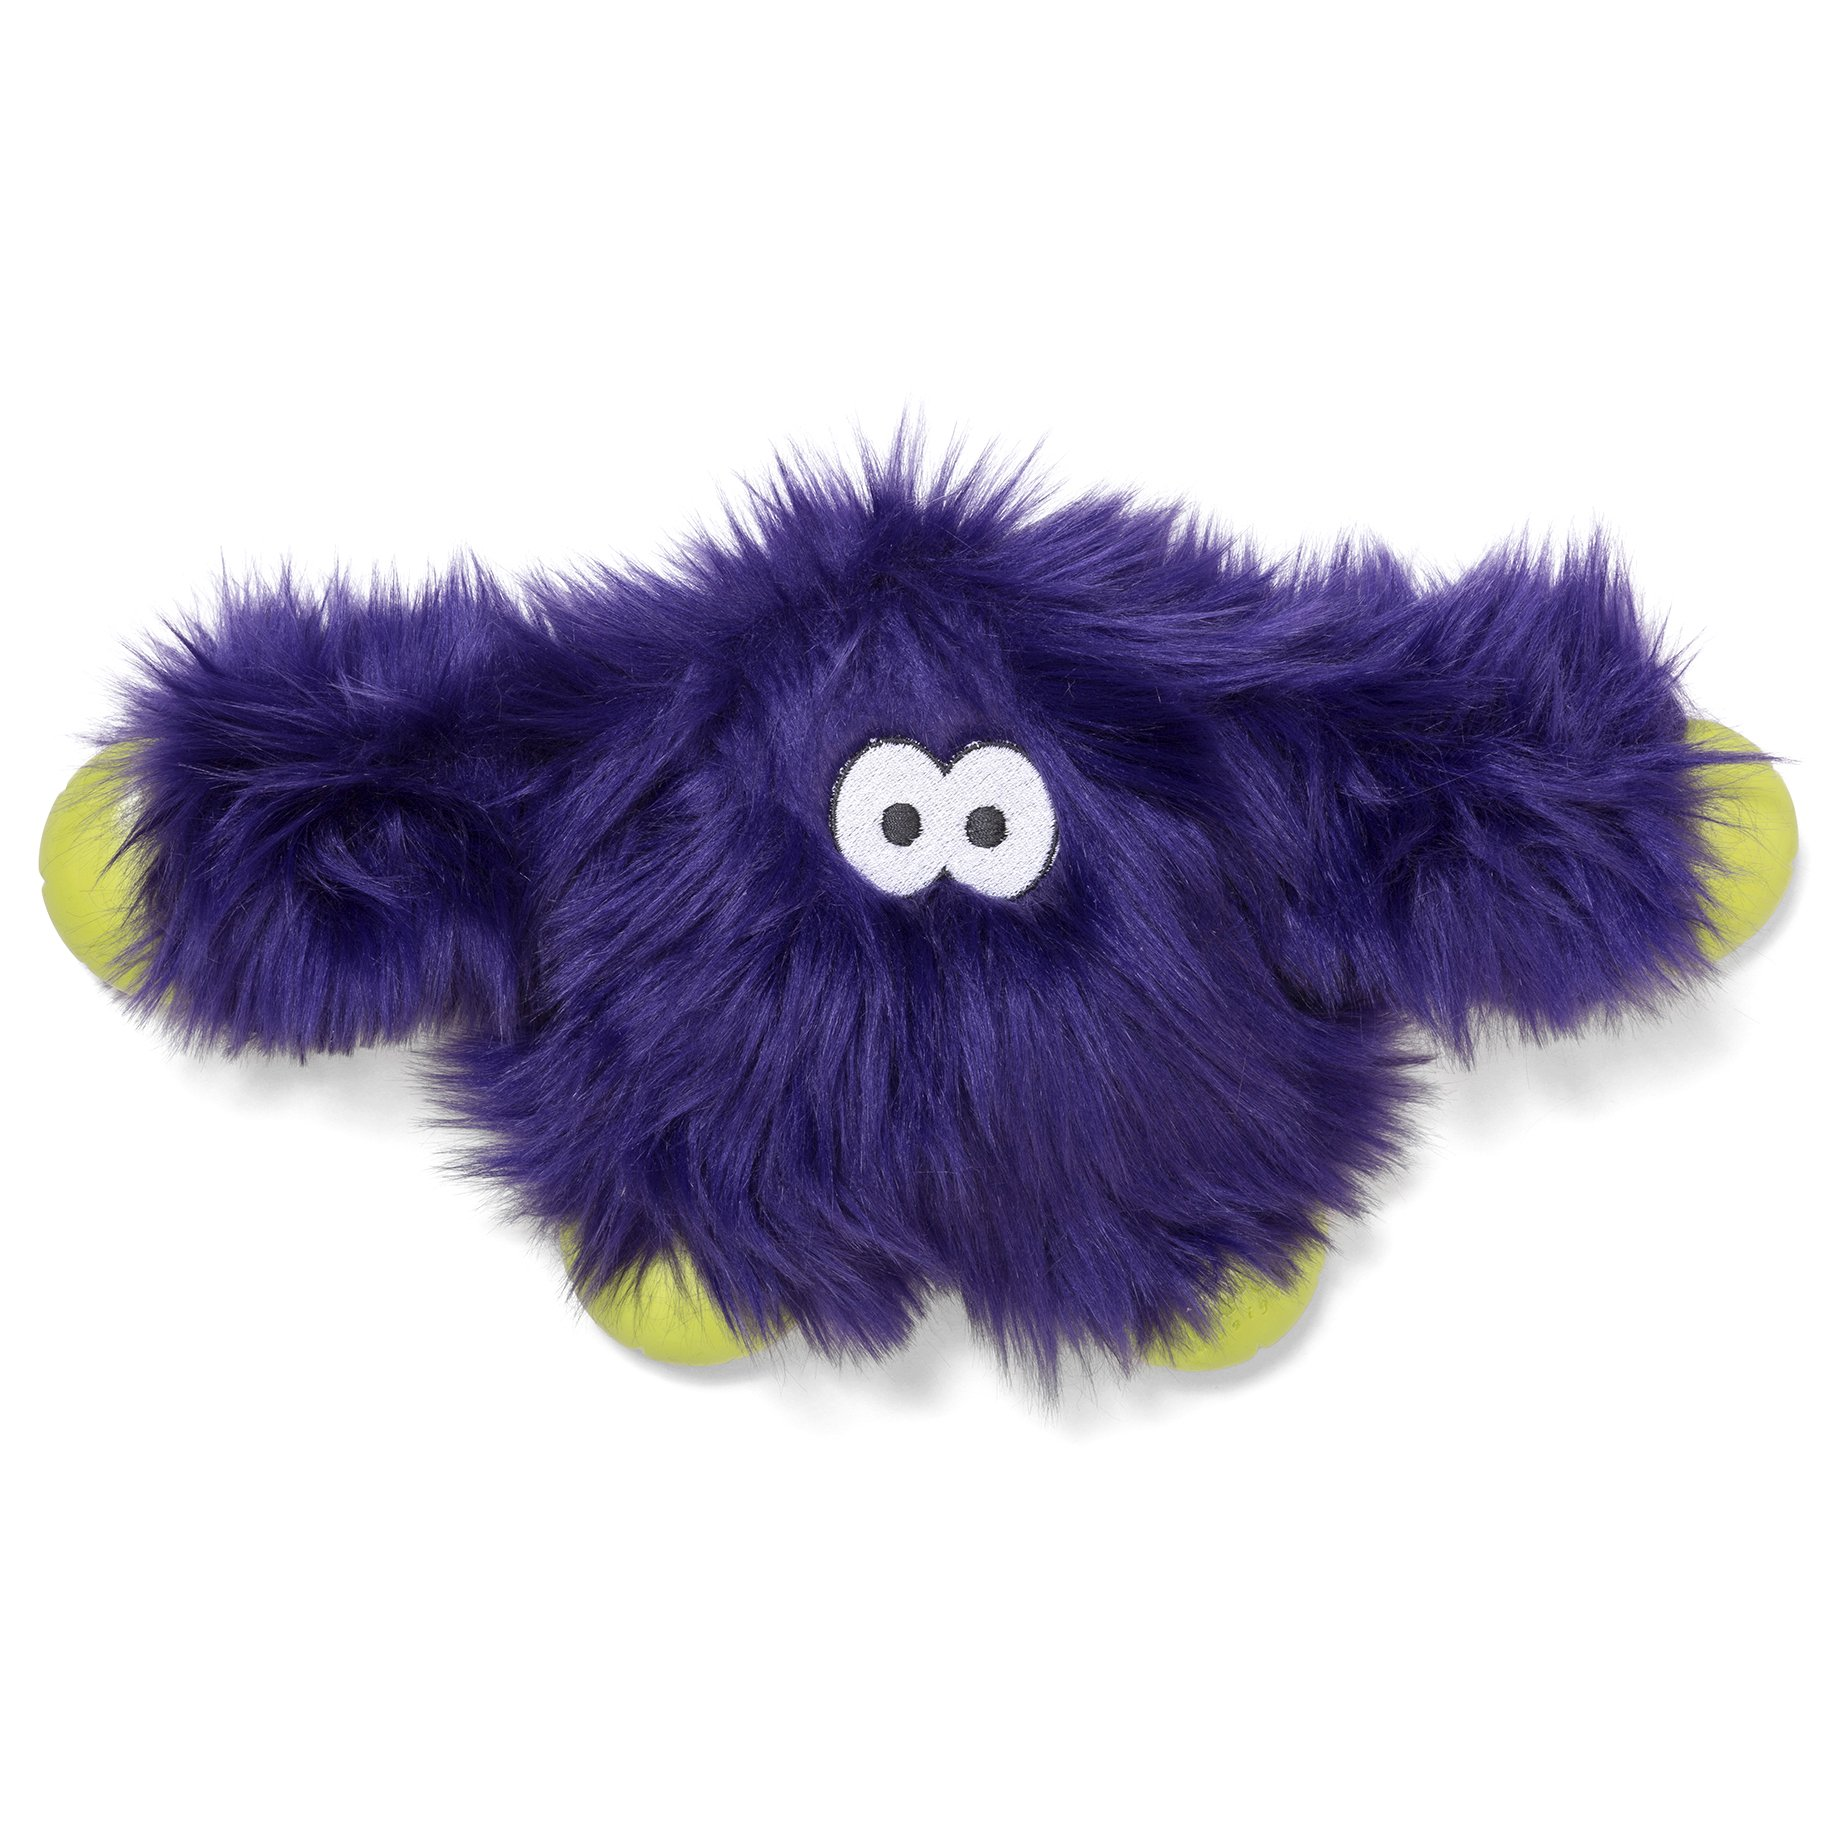 West Paw Rowdies with HardyTex and Zogoflex, Durable Plush Dog Toy for Medium to Large Dogs, Jefferson, Purple Fur by West Paw Design